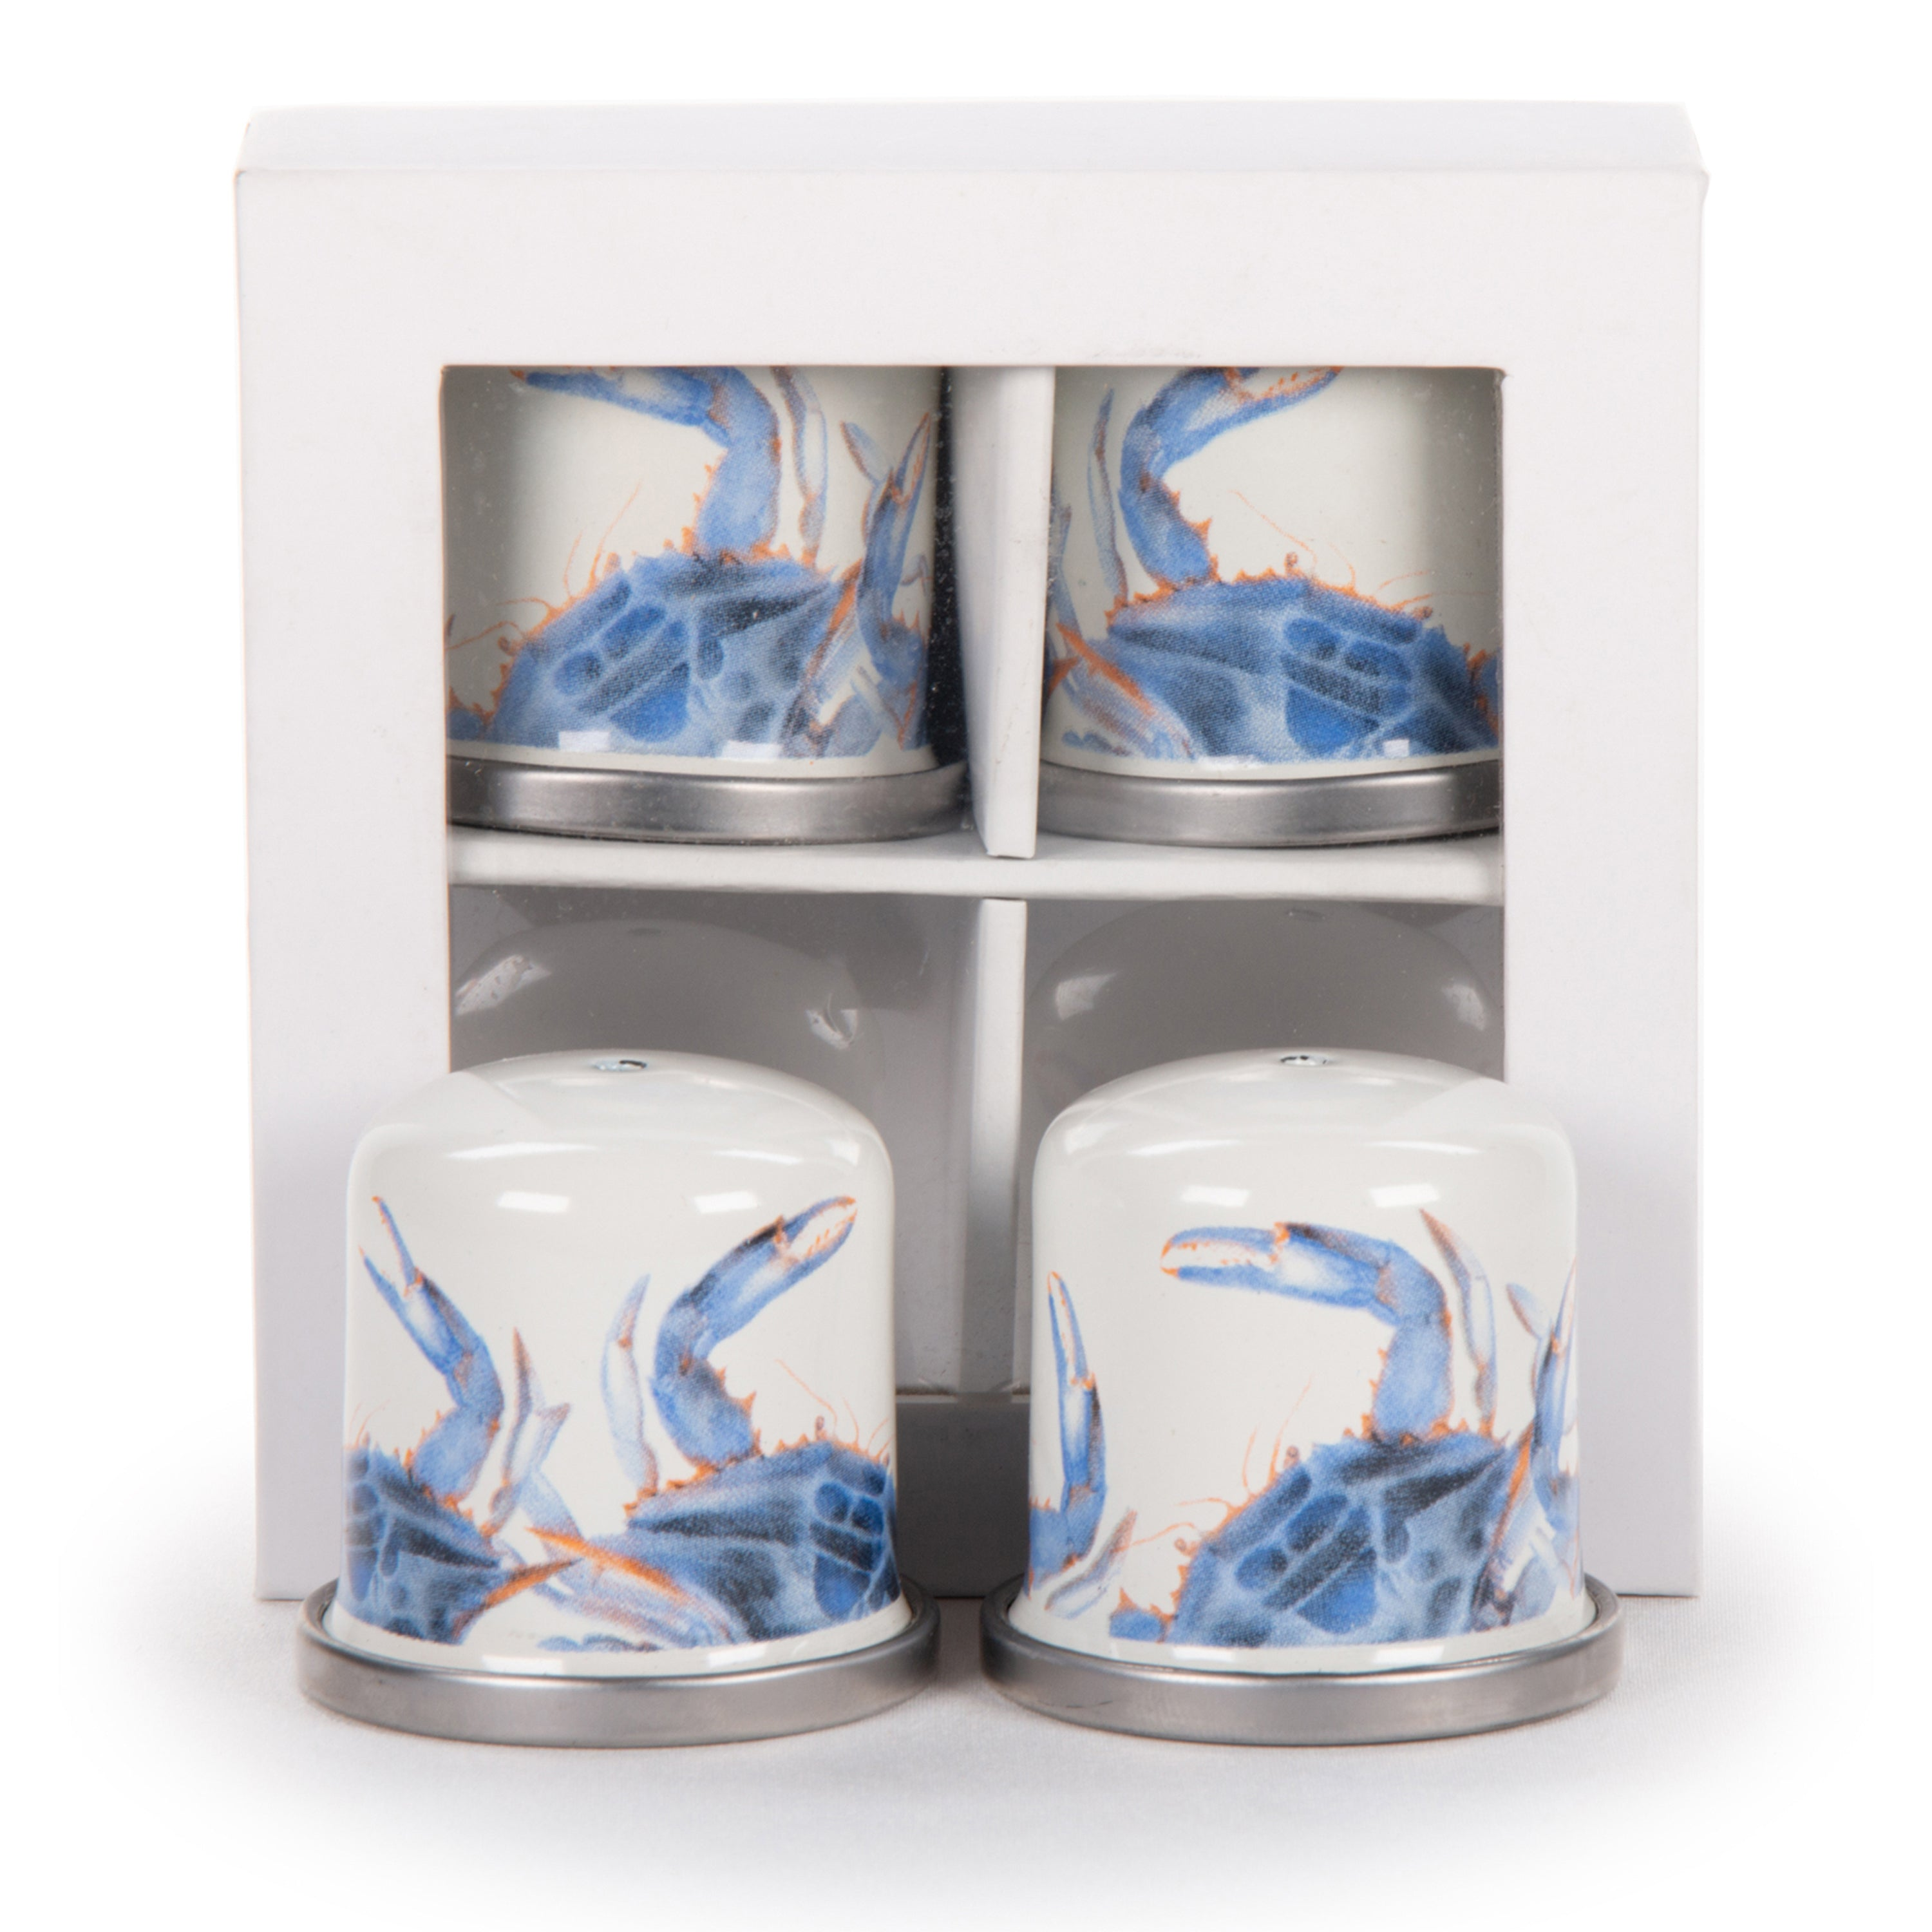 SE37 - Blue Crab Salt & Pepper Image 1